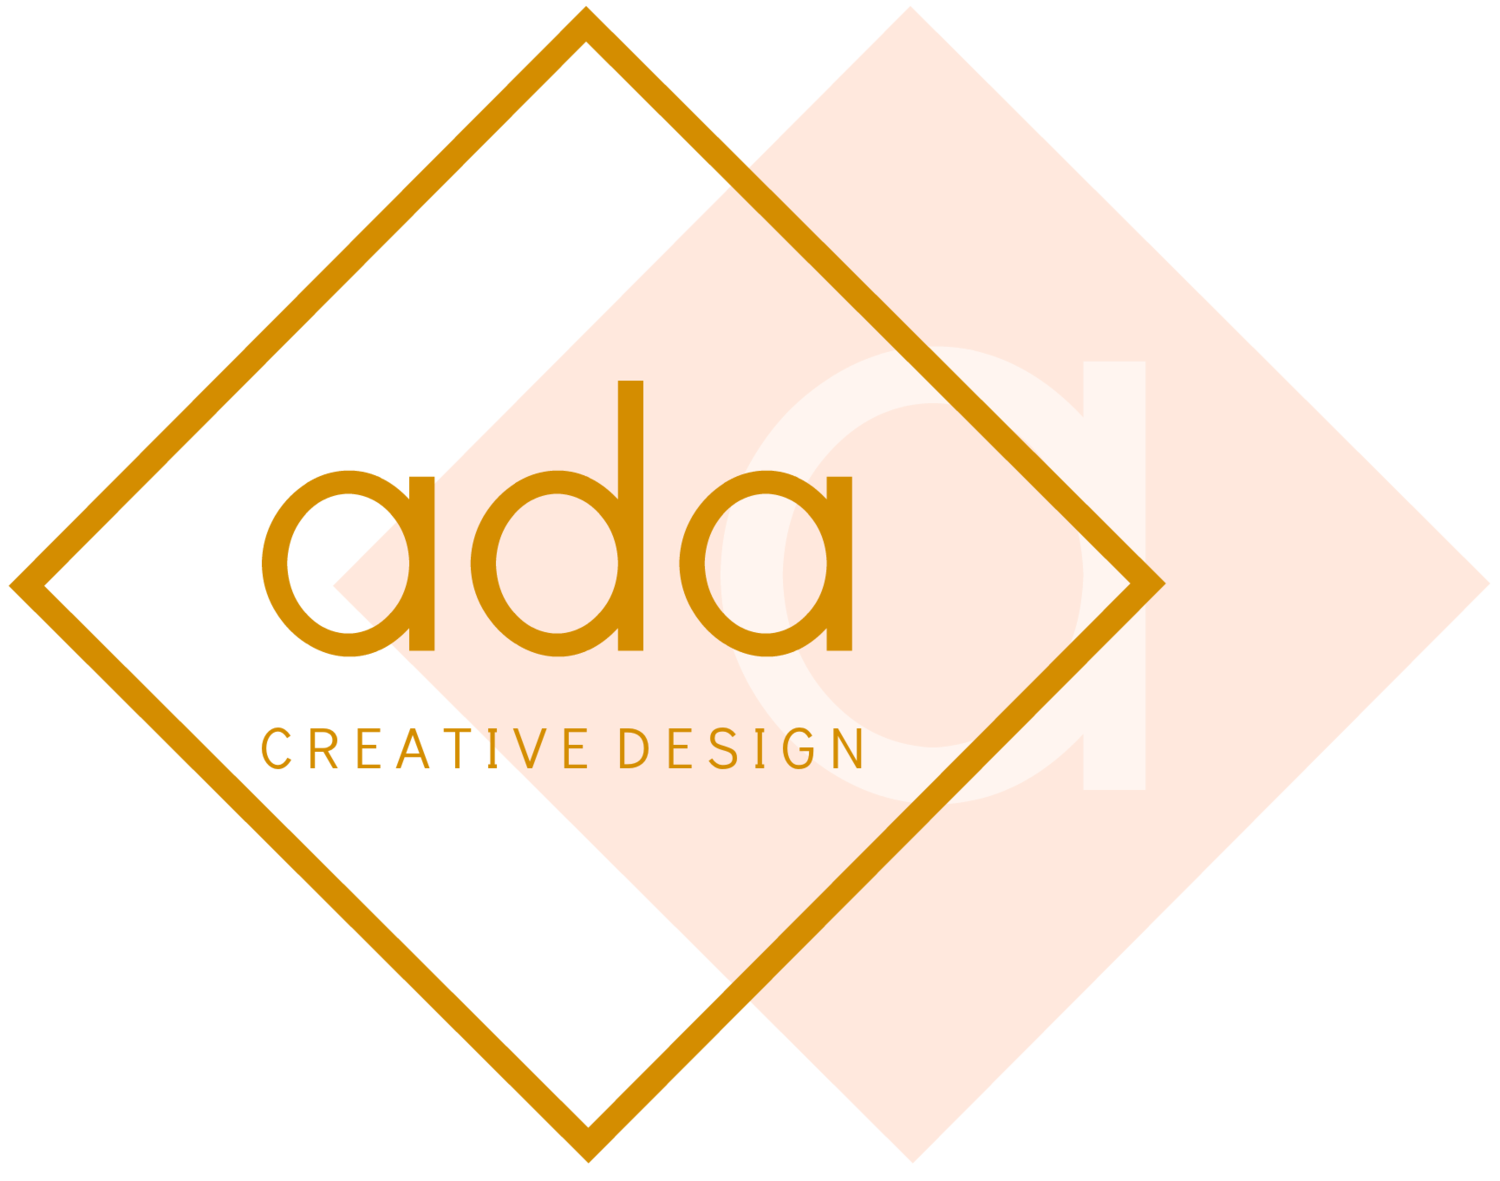 Ada Creative Design